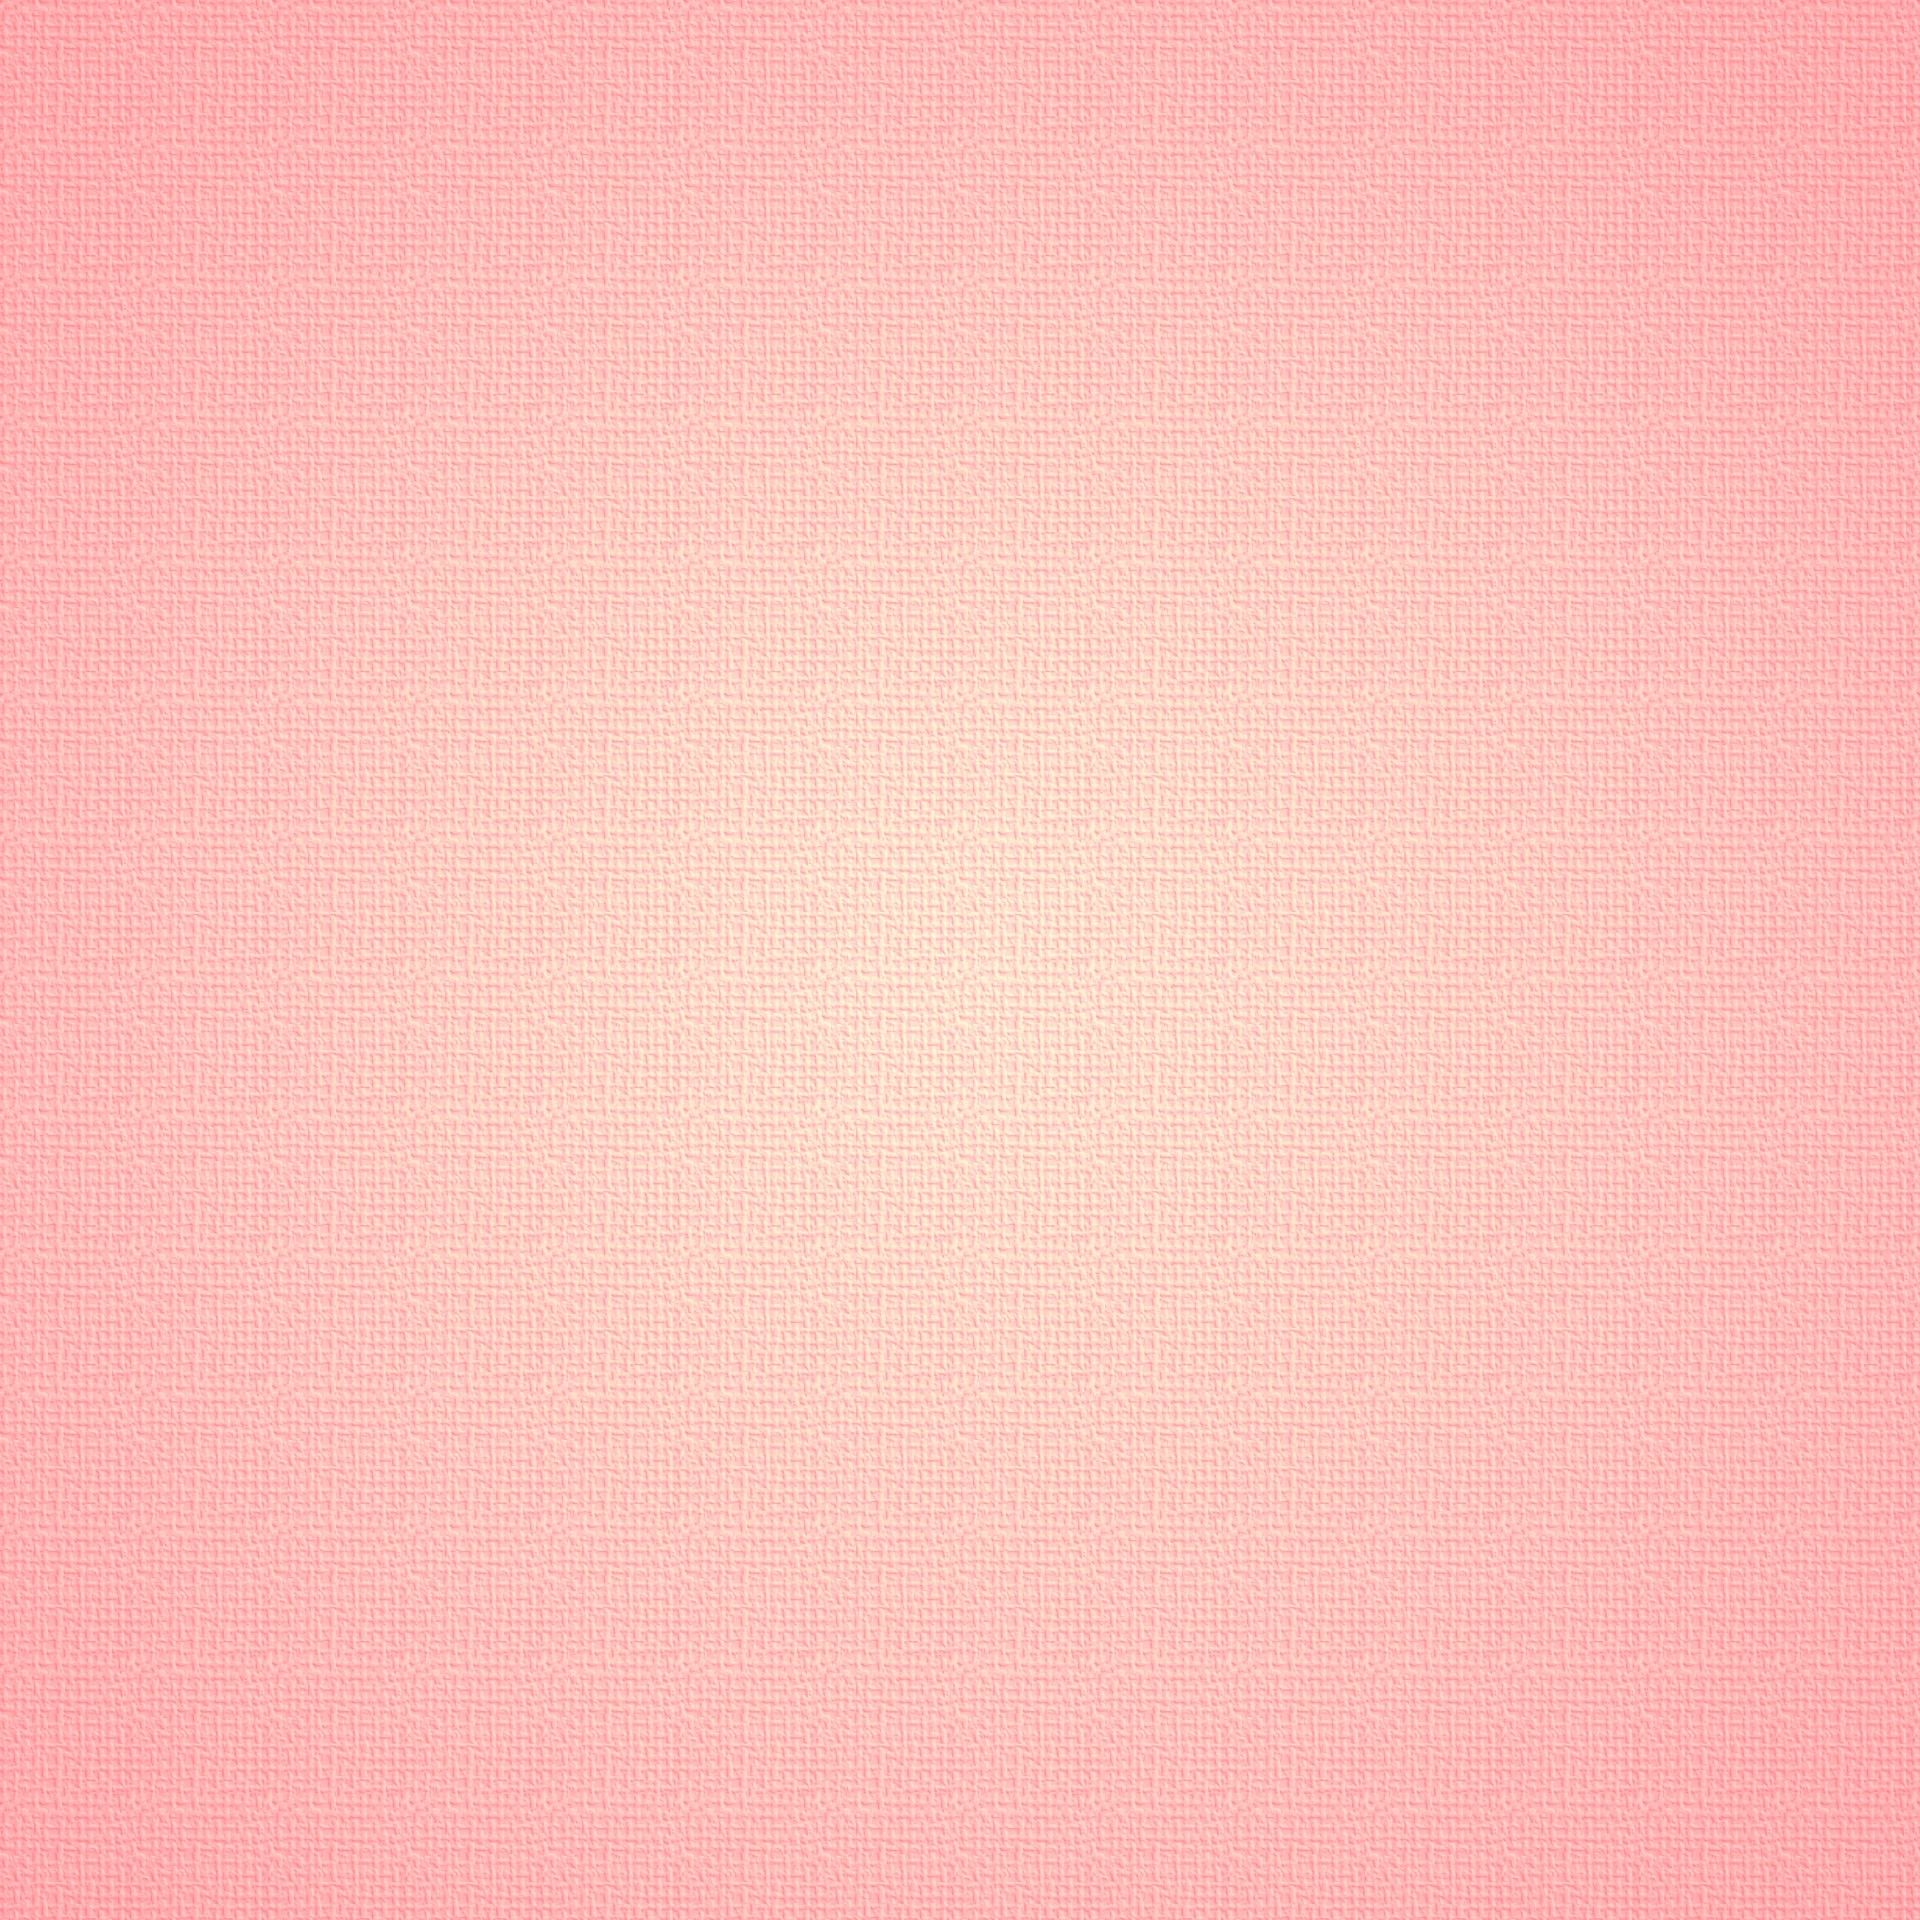 peach background gradient texture free stock photo public domain peach background ombre wallpapers pink ombre wallpaper peach background gradient texture free